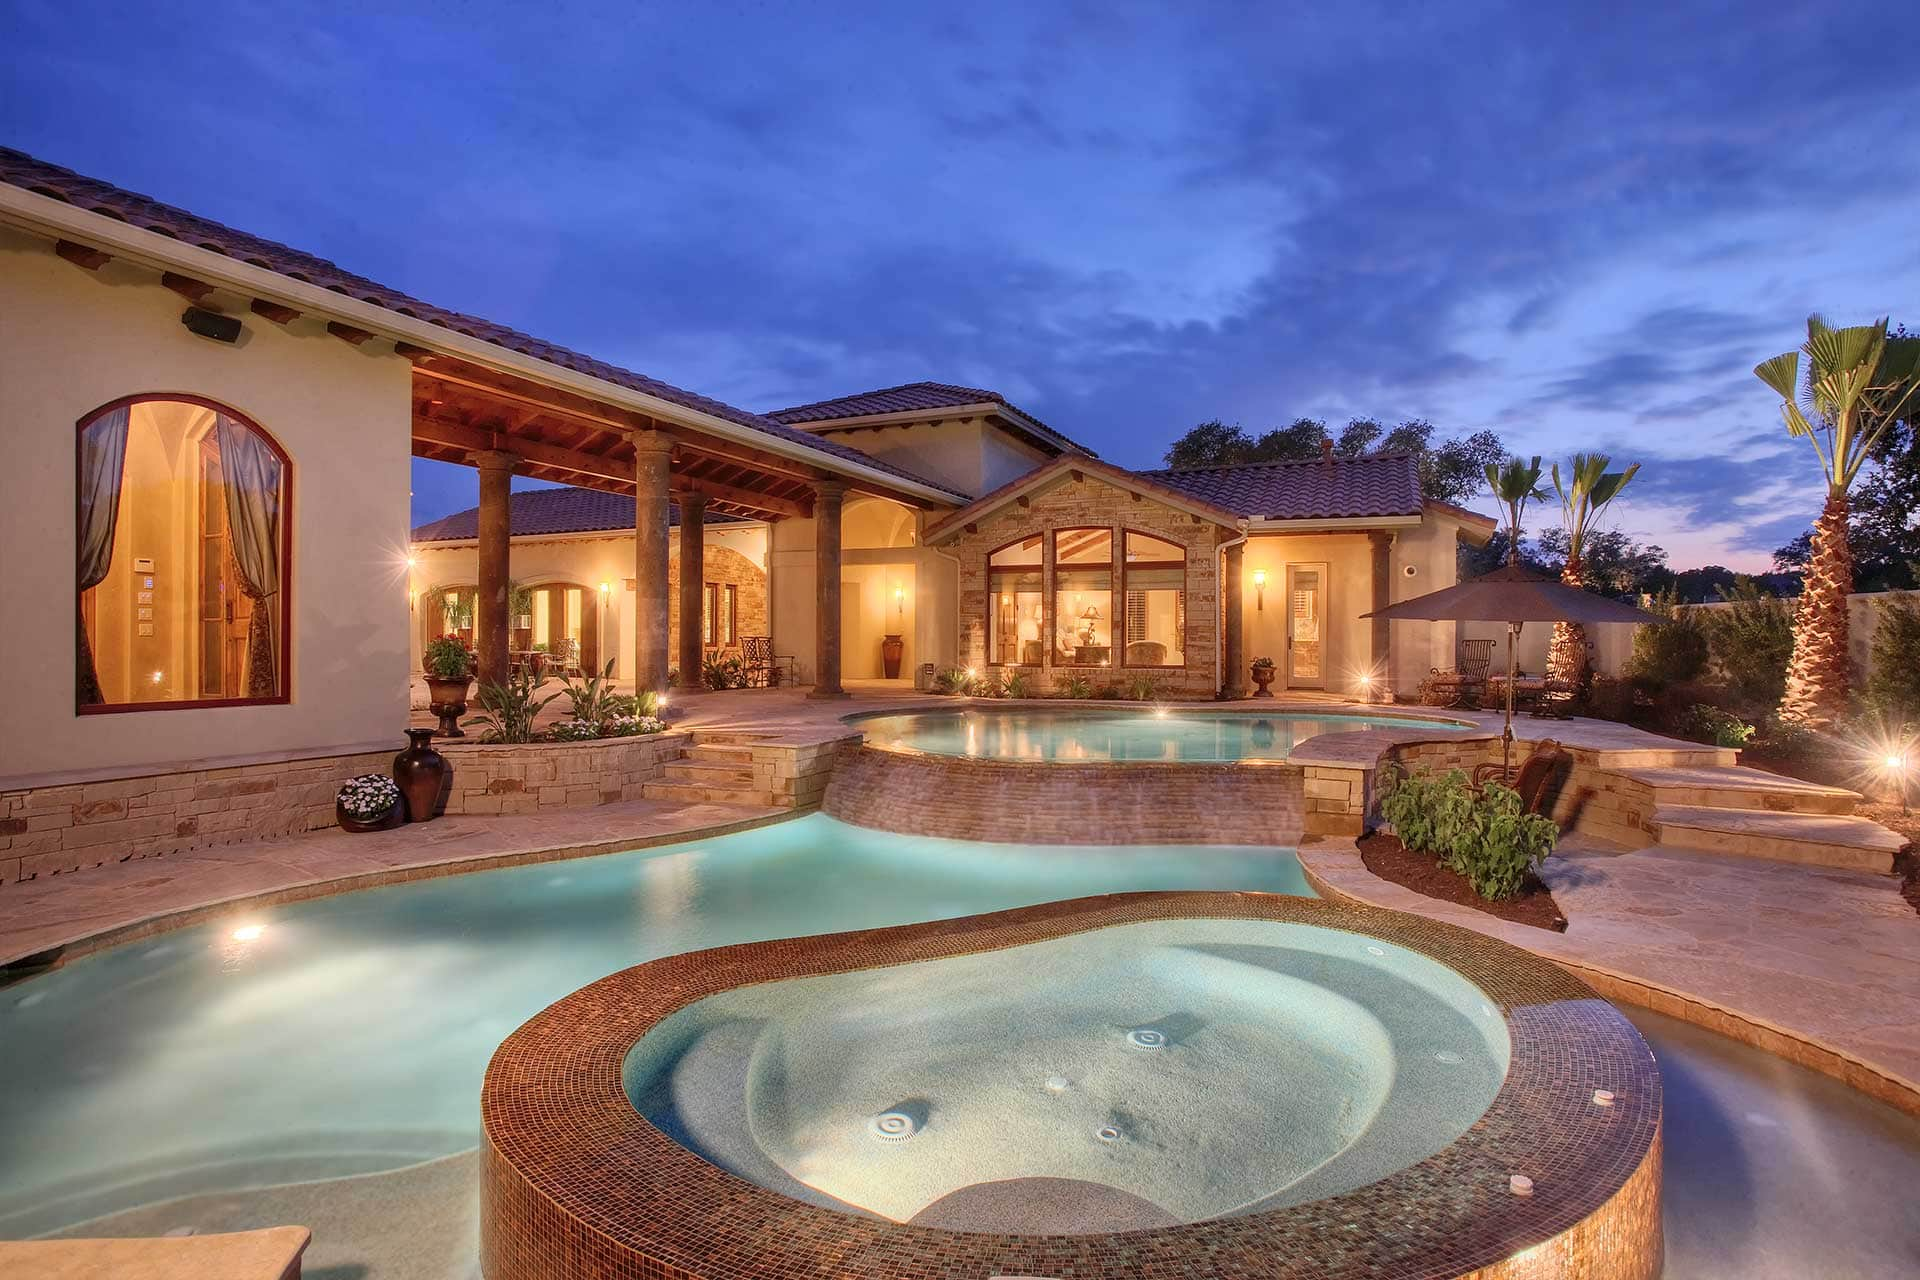 Mediterranean 7798 - Outdoor Pool & Hot Tub